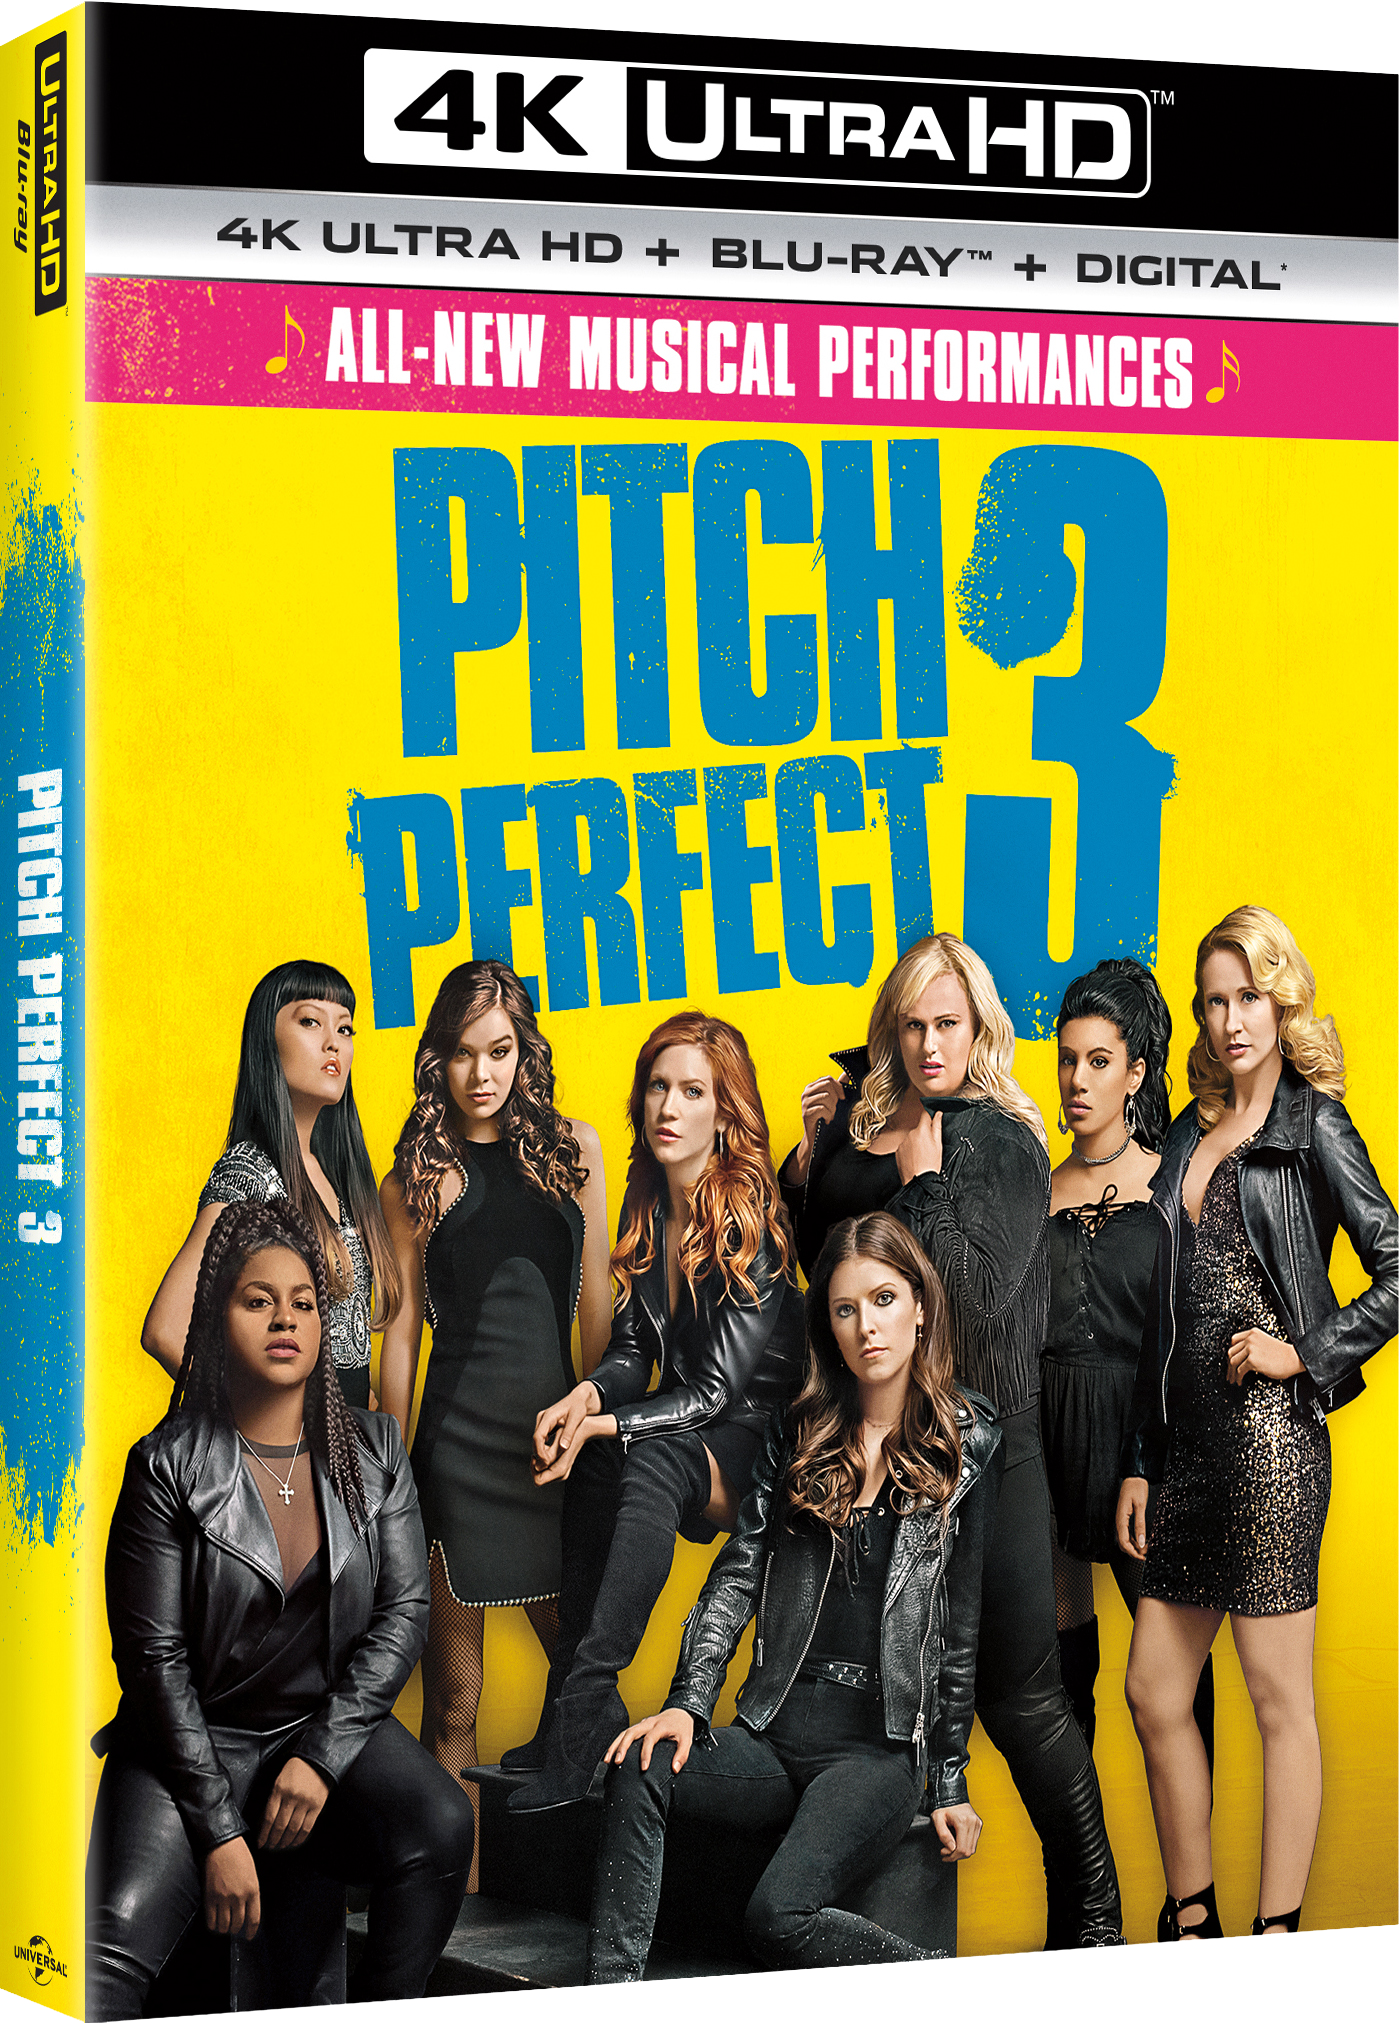 Pitch Perfect 3 | Trailer & Movie Site | Blu-ray™, DVD